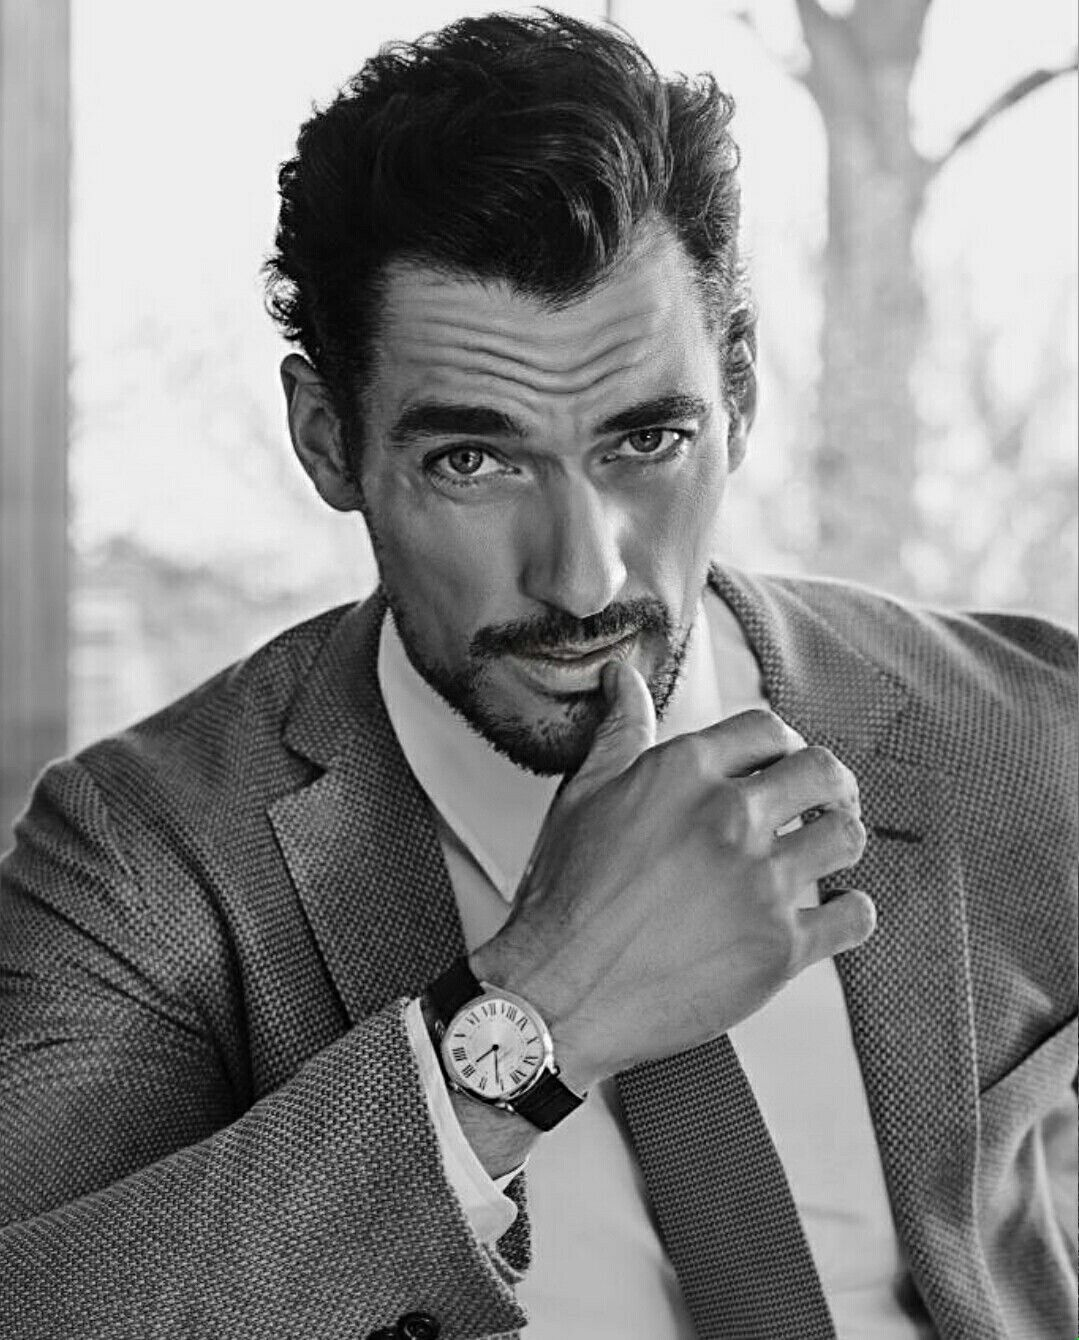 Pin by Tanja Gonzales on Gandy, more Dandy than Candy ...